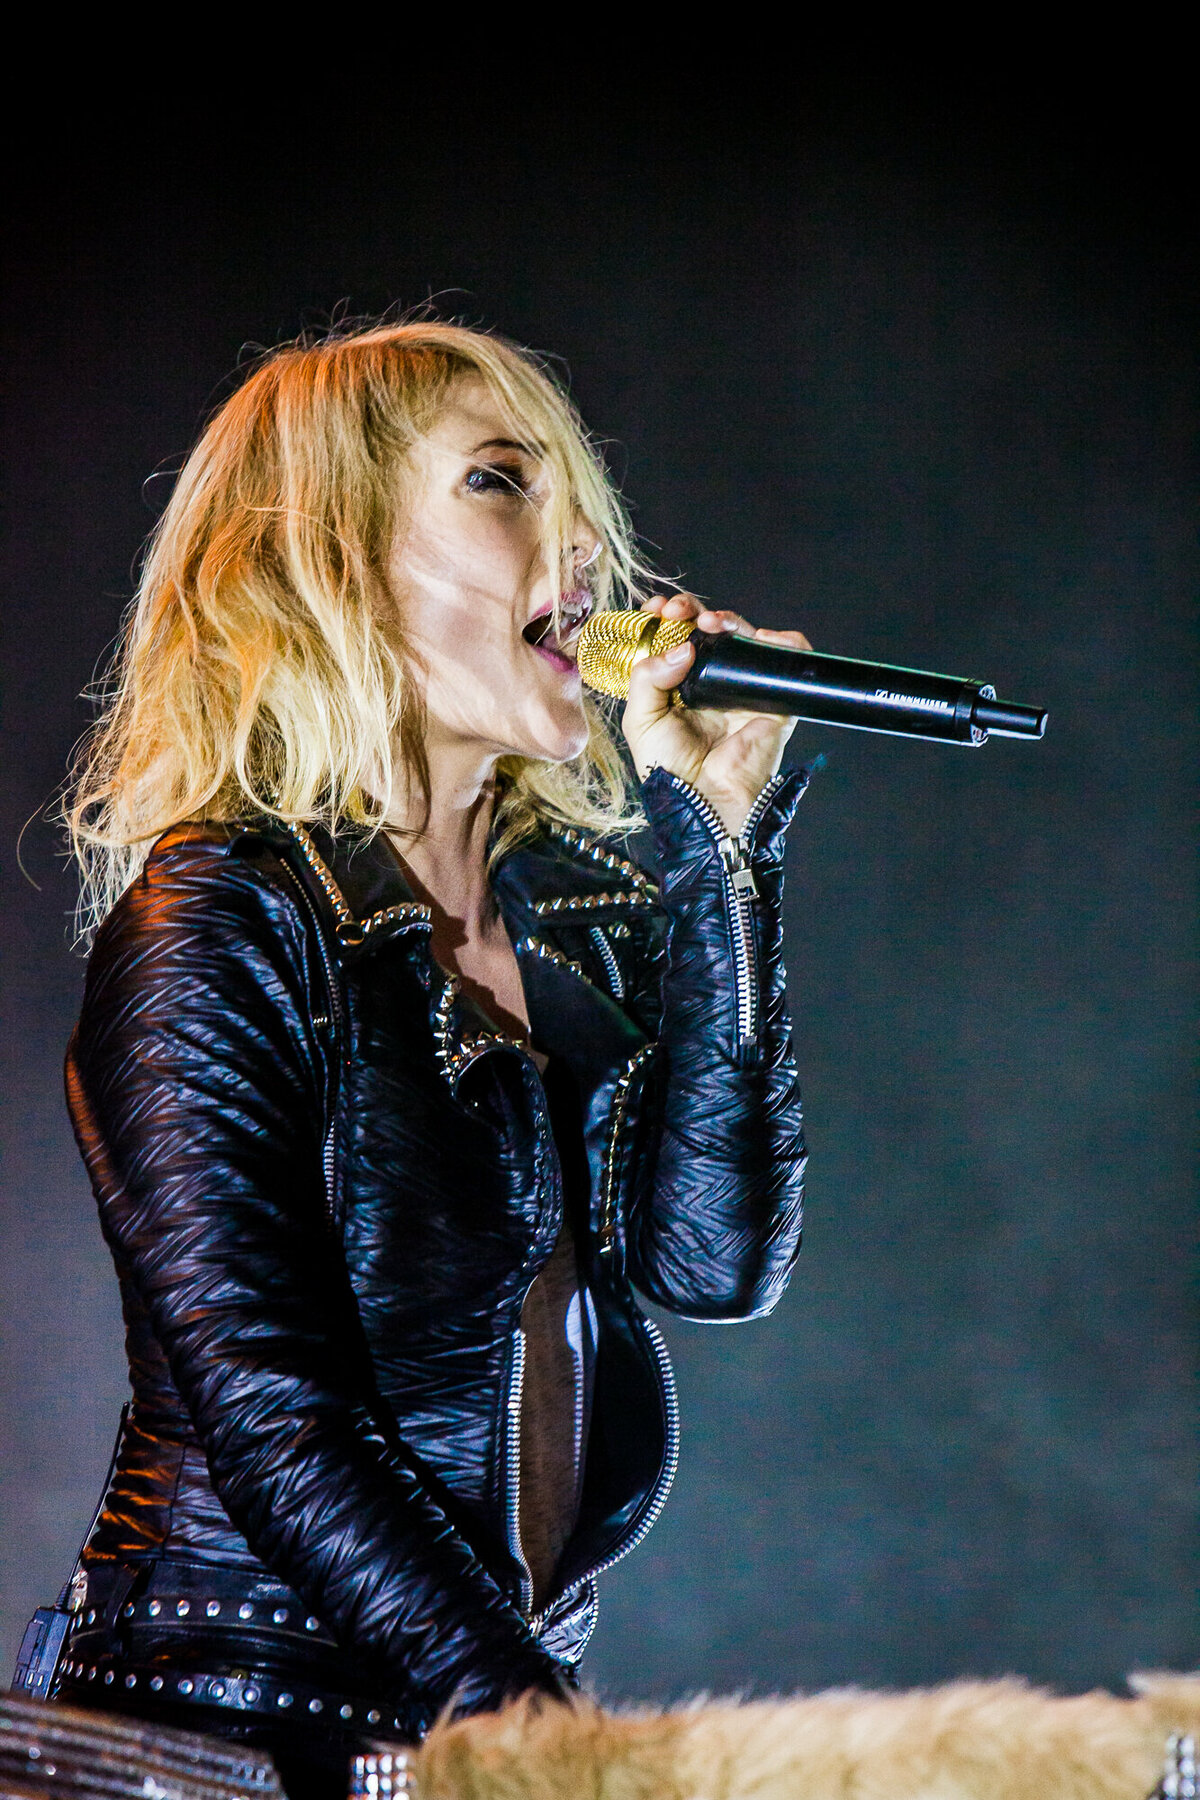 068-Metric-Hollywood-Palladium-Kelli-Hayden-2